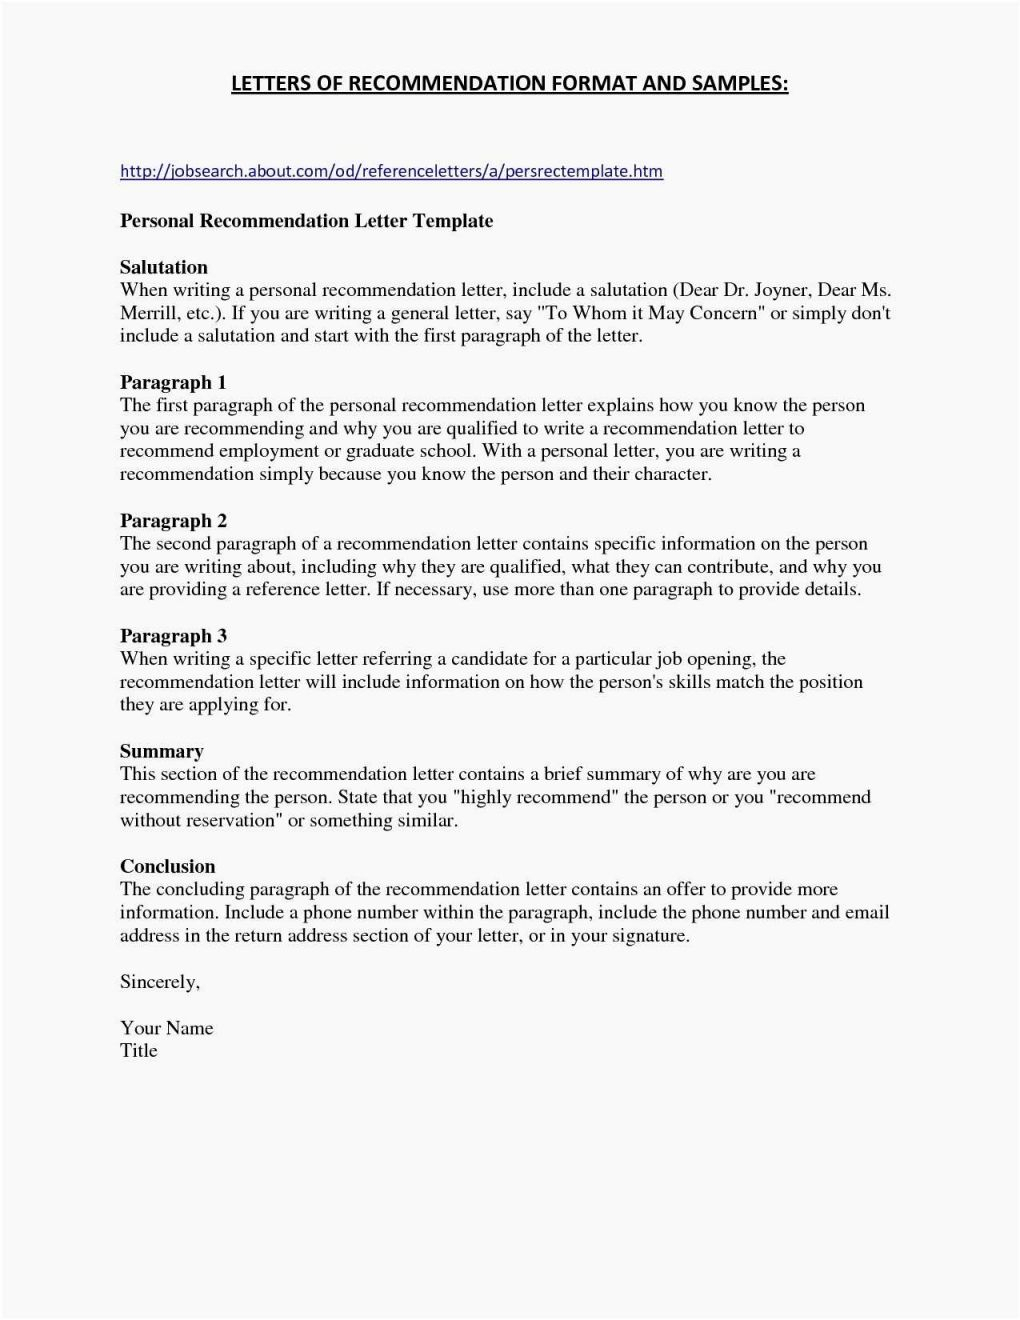 letter to hoa template Collection-Back to School Letter Template top Letter to Hoa Template Qy74 – Documentaries for Change 4-t